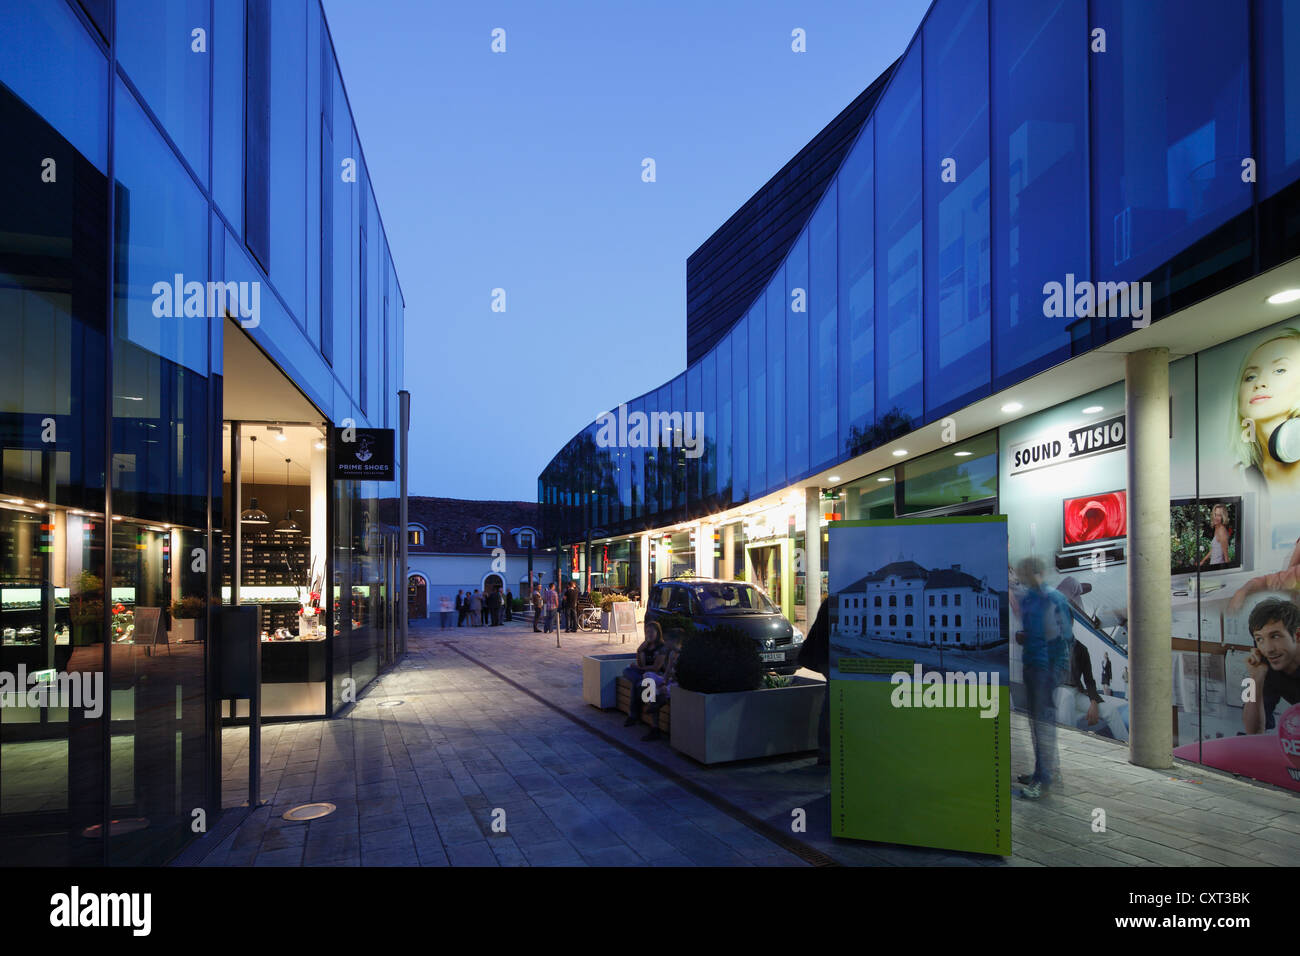 Kunsthaus Weiz, arts and entertainment venue, right, Eingasse lane, Weiz, East Styria, Styria, Austria, Europe, - Stock Image